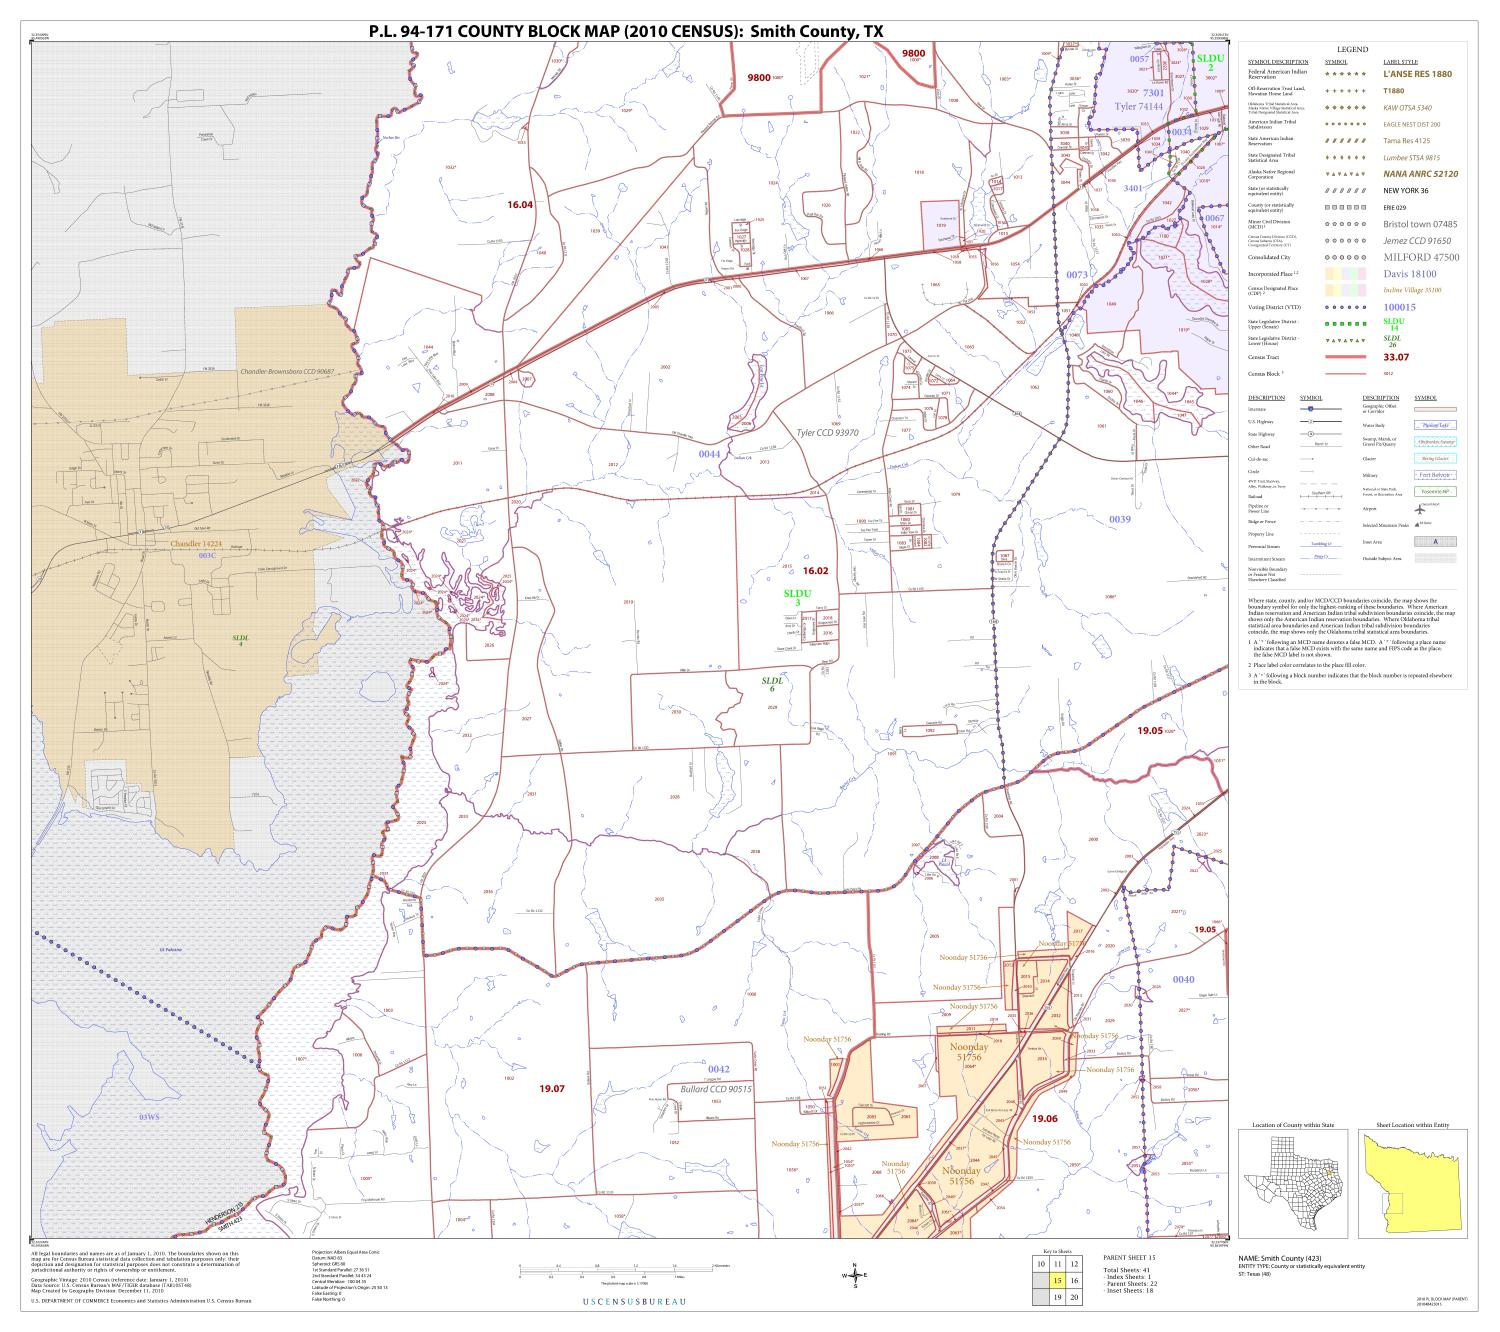 P.L. 94-171 County Block Map (2010 Census): Smith County, Block 15                                                                                                      [Sequence #]: 1 of 1